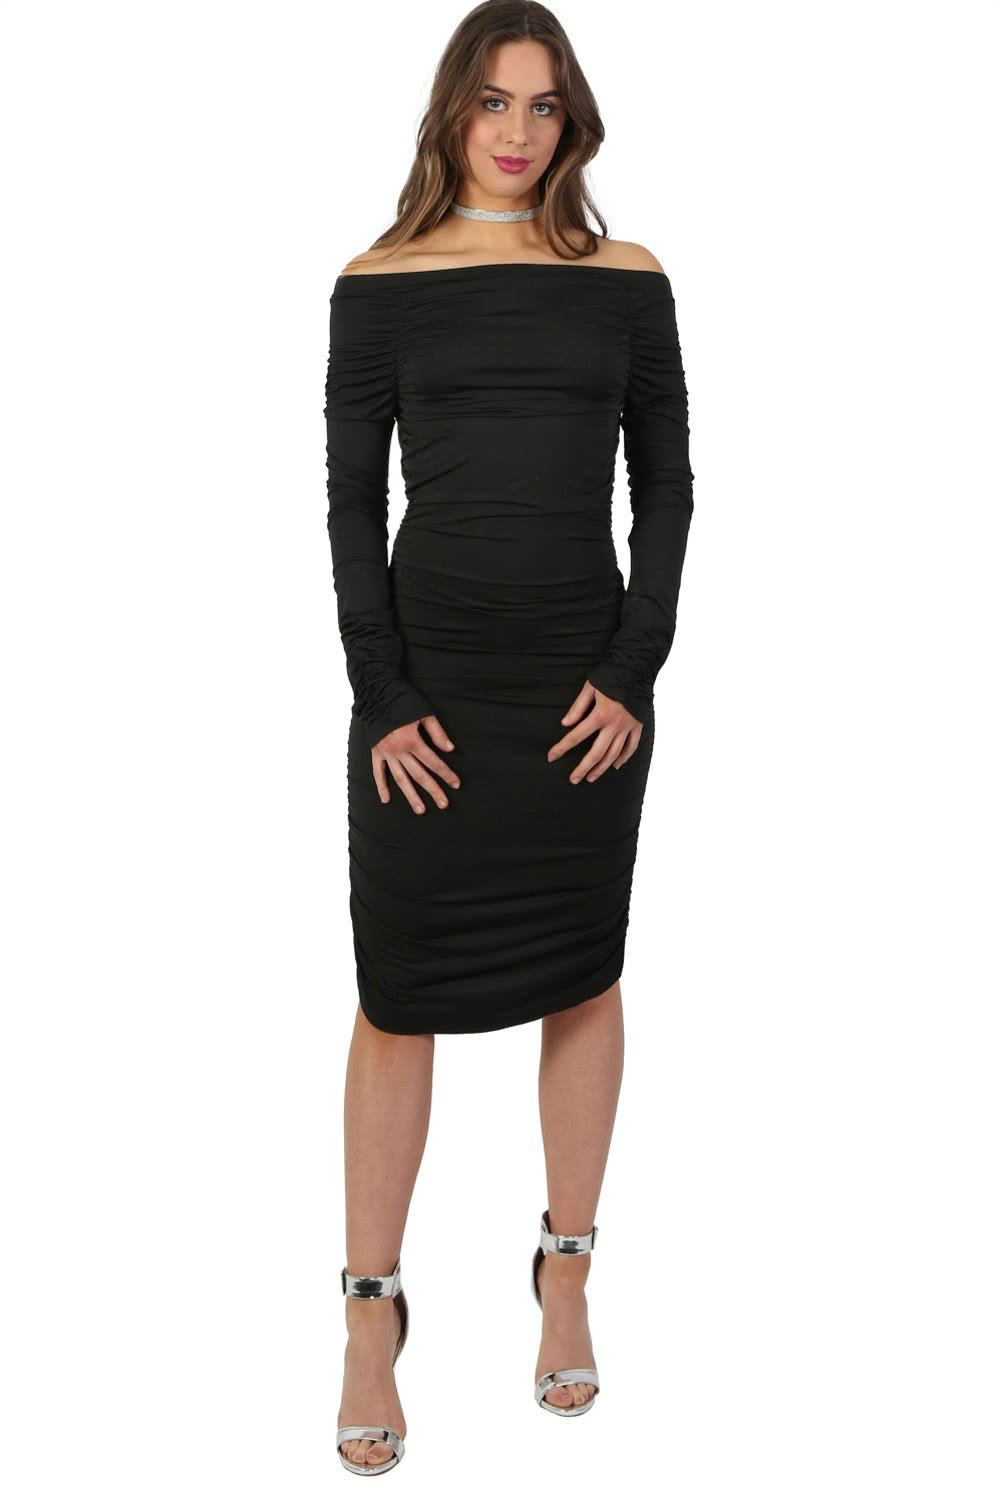 Dresses - Off Shoulder Ruched Long Sleeve Bodycon Dress In Black